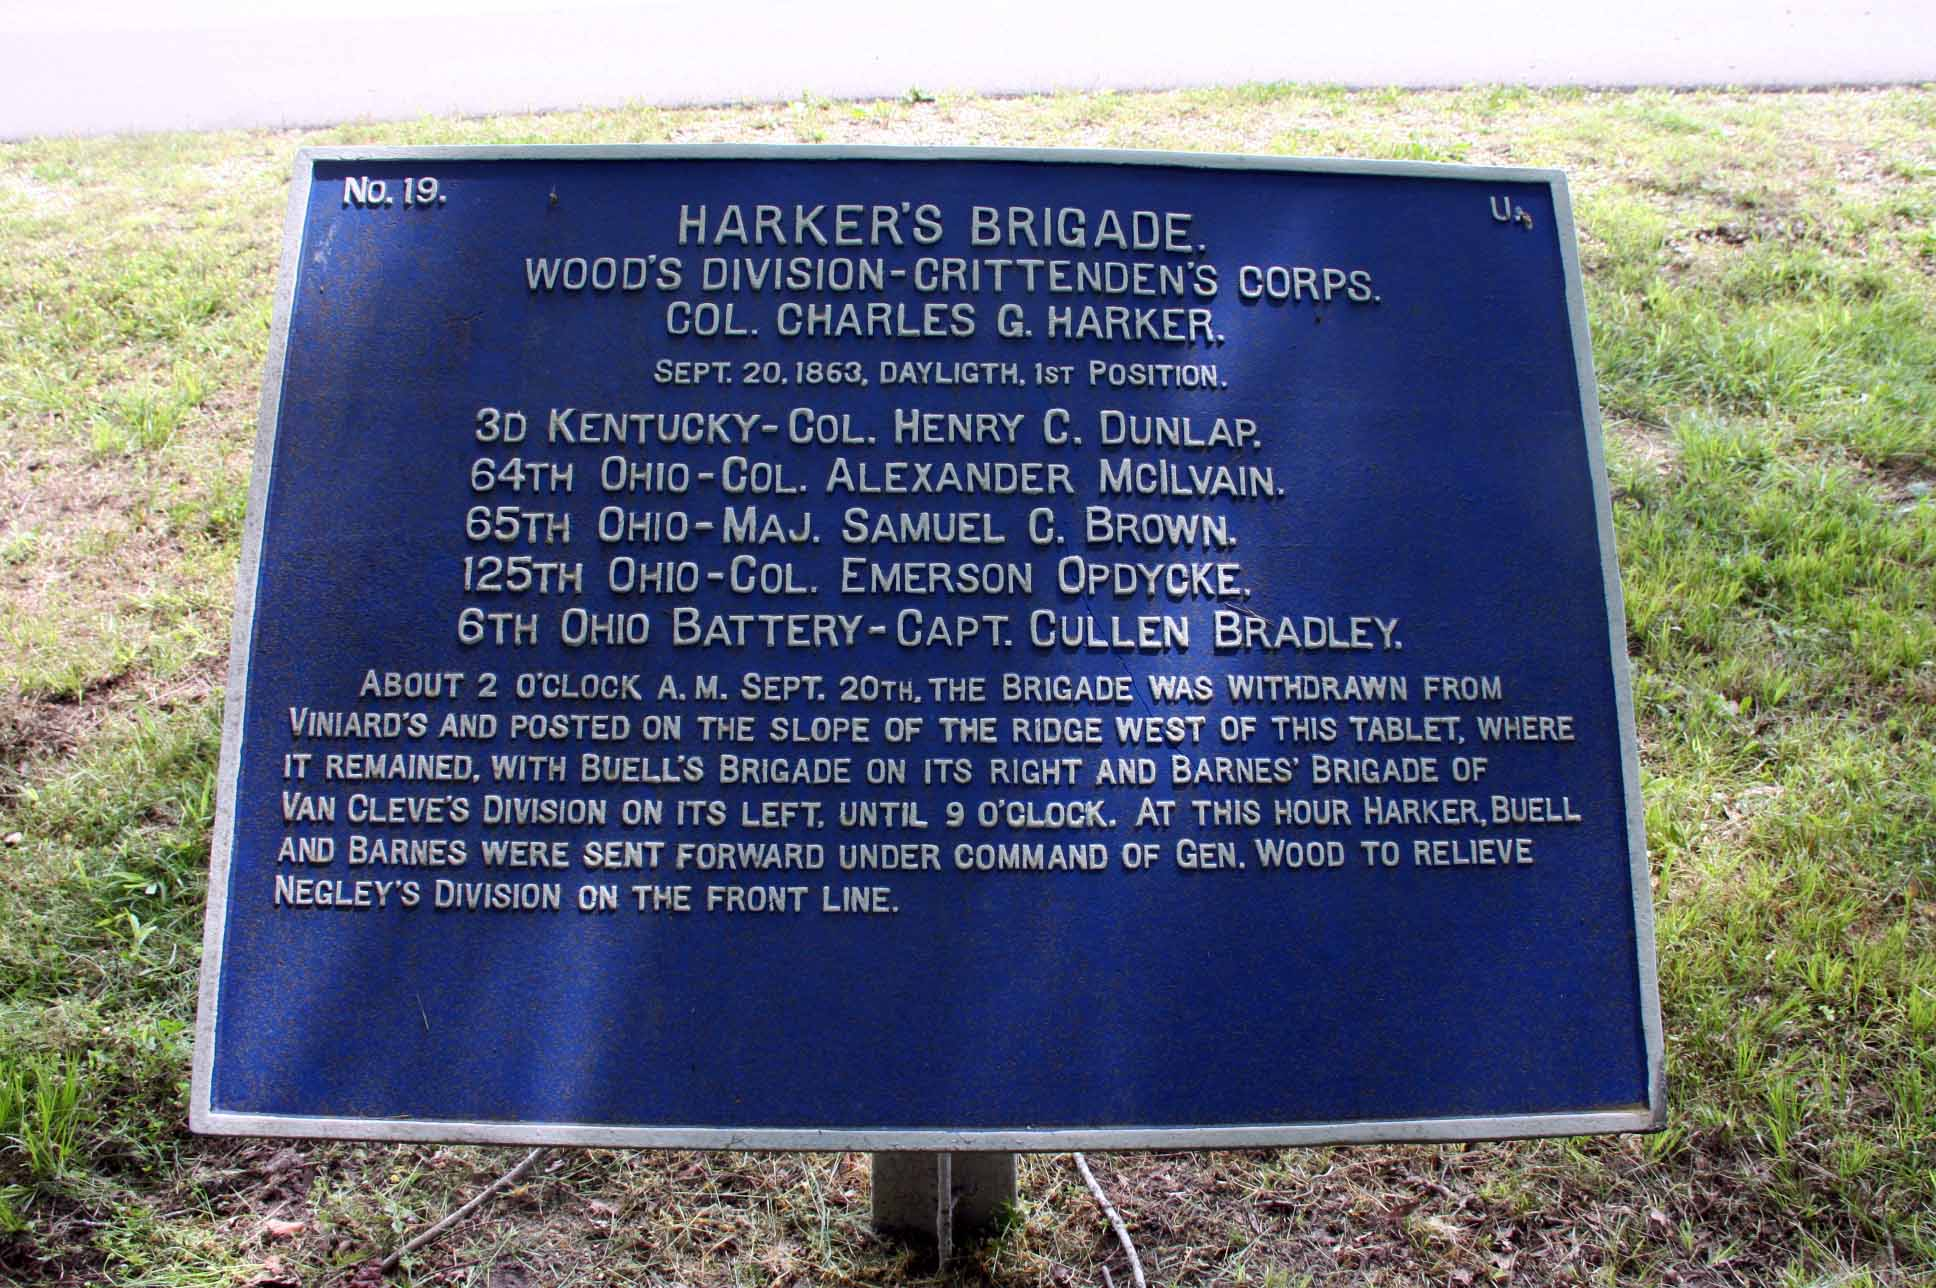 Harker's Brigade Tablet, click photo to enlarge.